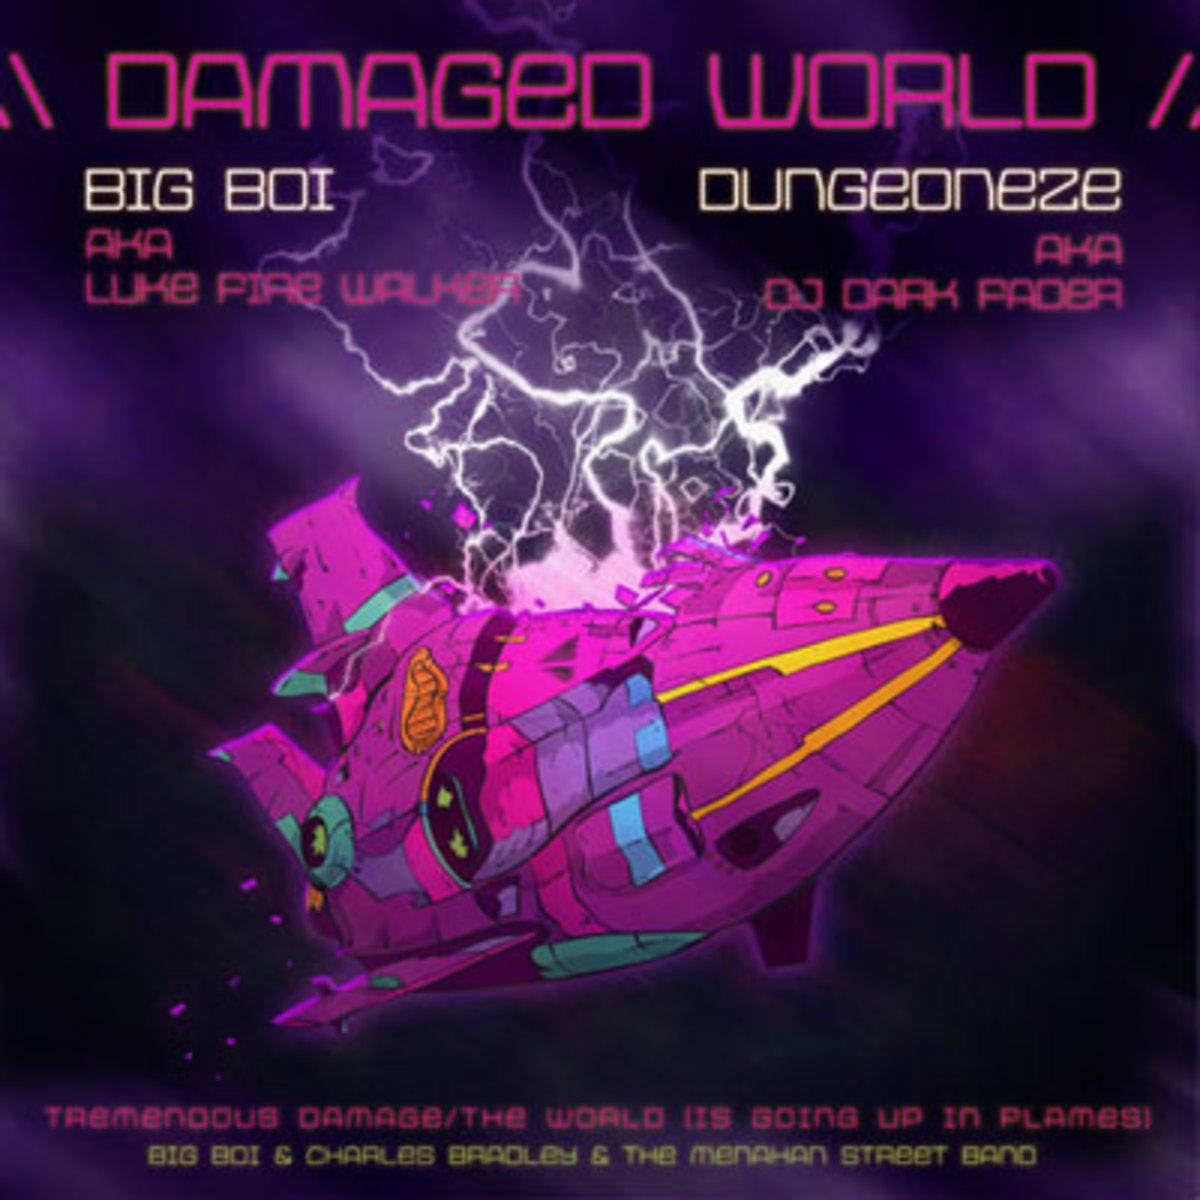 bigboi-damagedworld.jpg